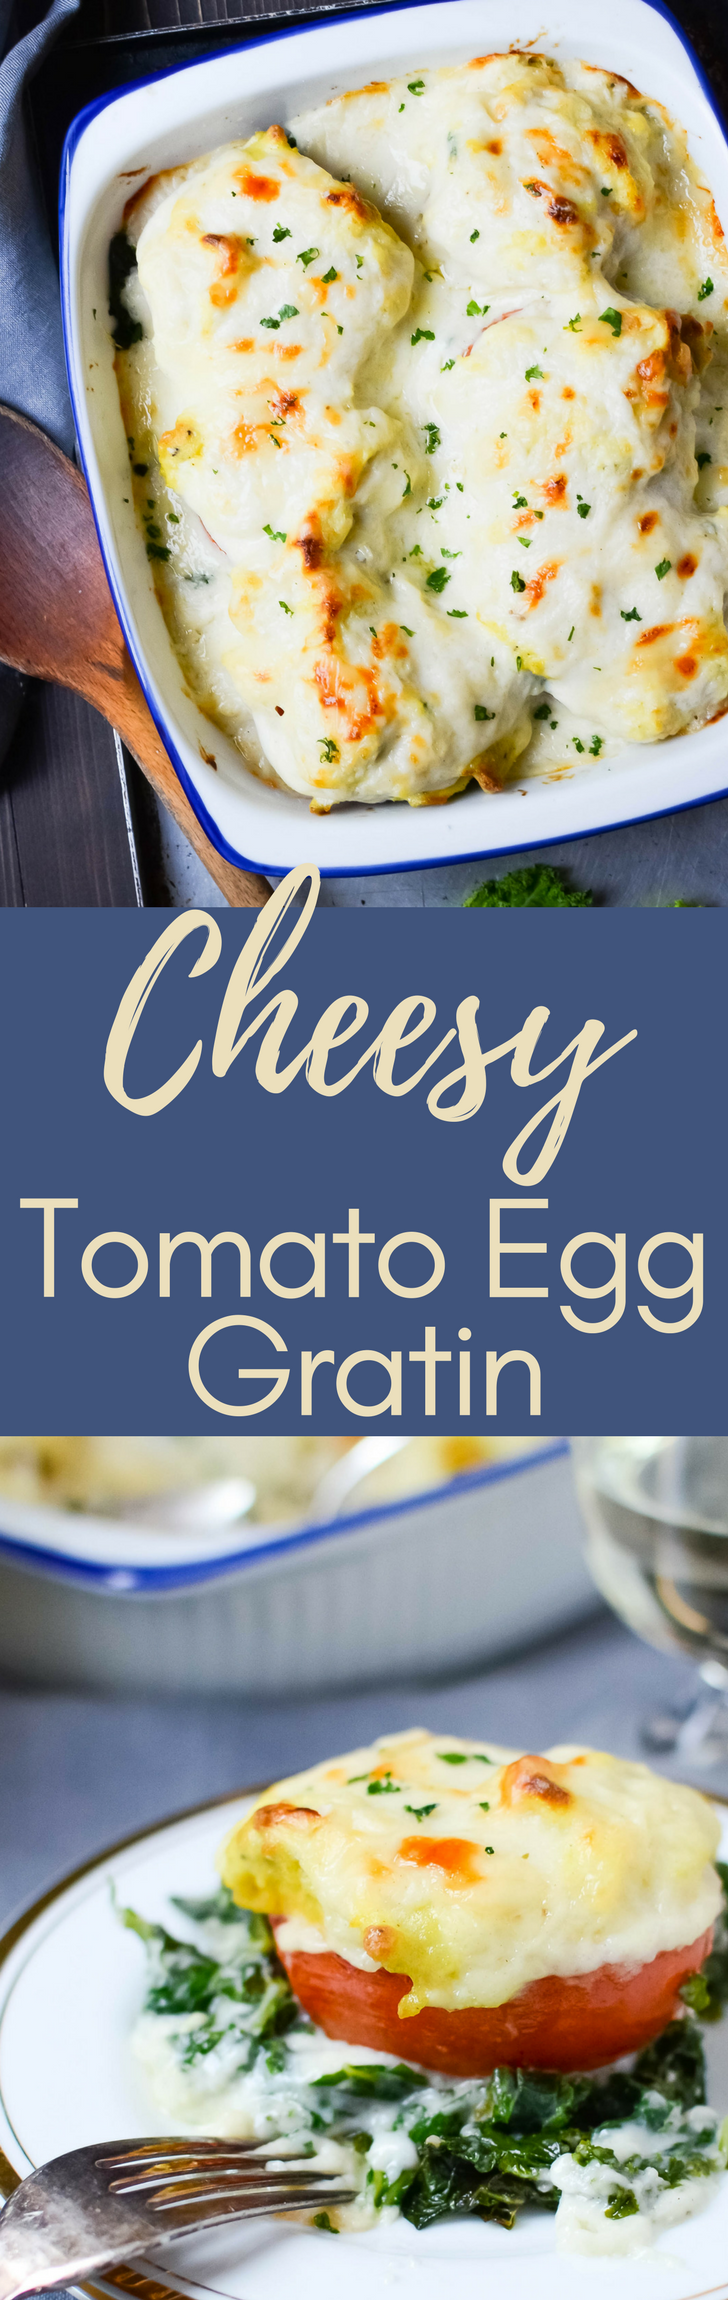 Need a homestyle casserole recipe?  Cheesy Tomato Egg Gratin Is a great first course or vegetarian main with soft scrambled eggs and a rich béchamel sauce.